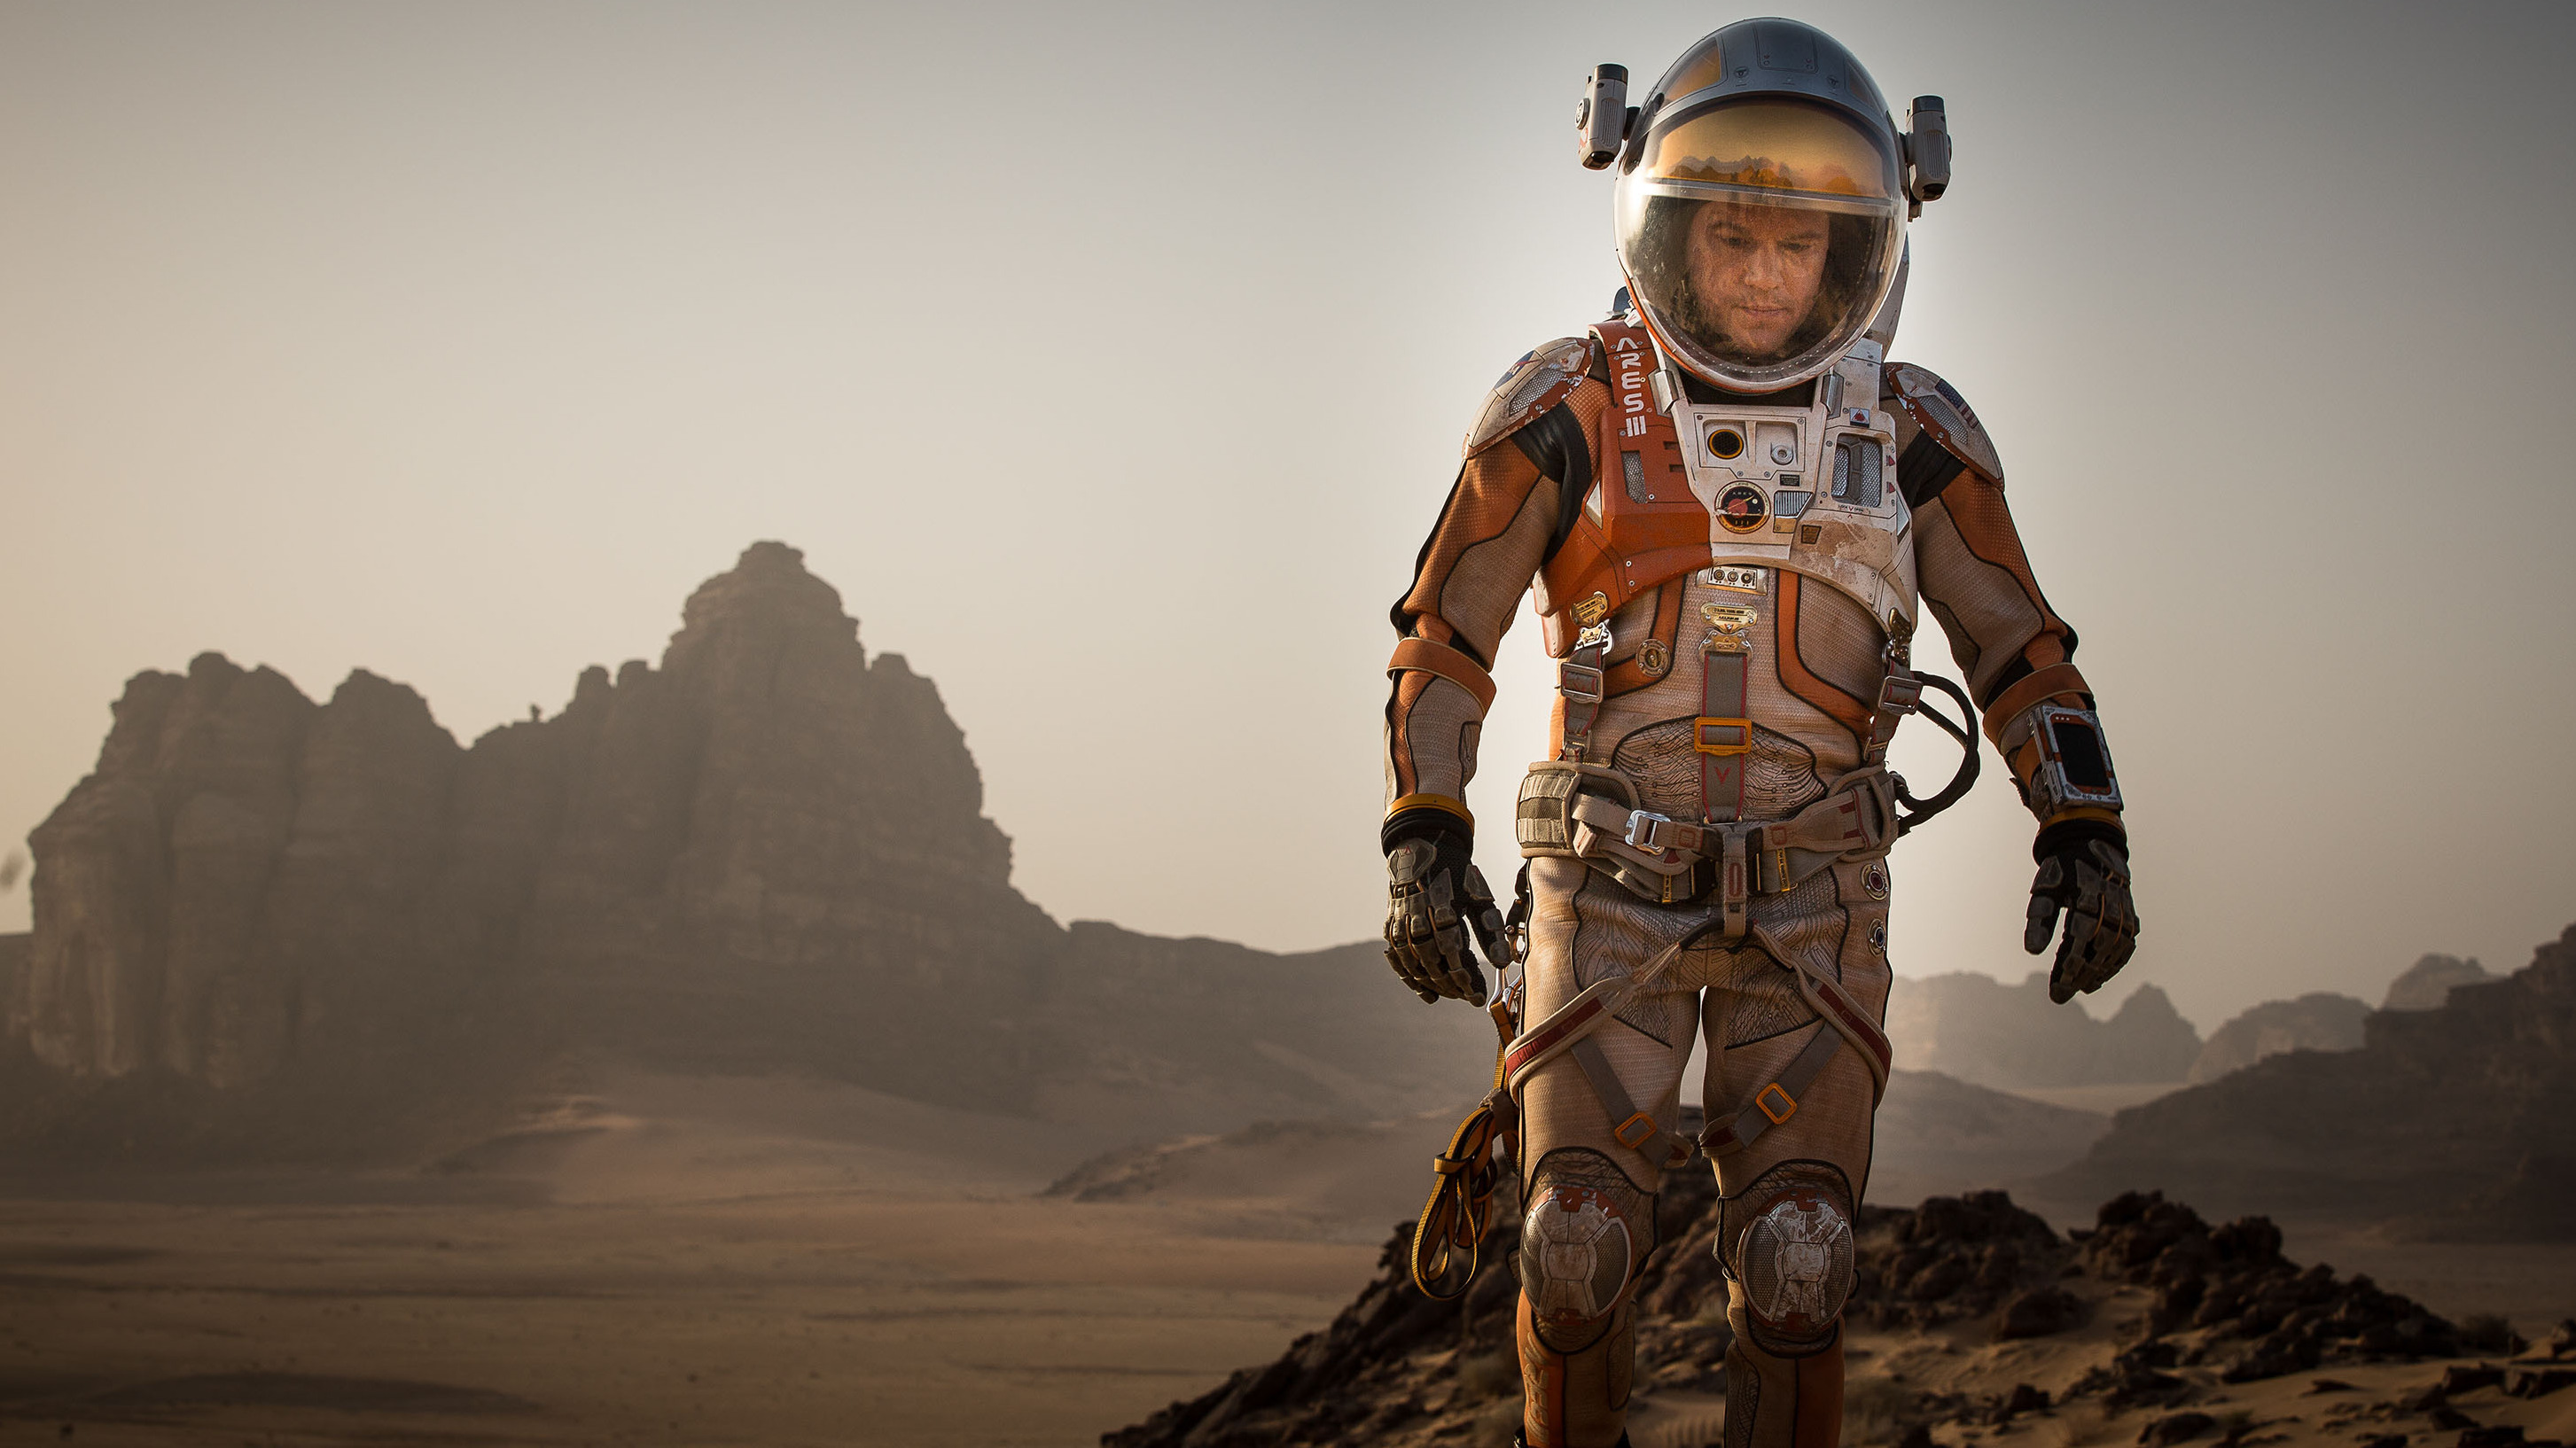 The Martian - Science Fiction and Science Fact